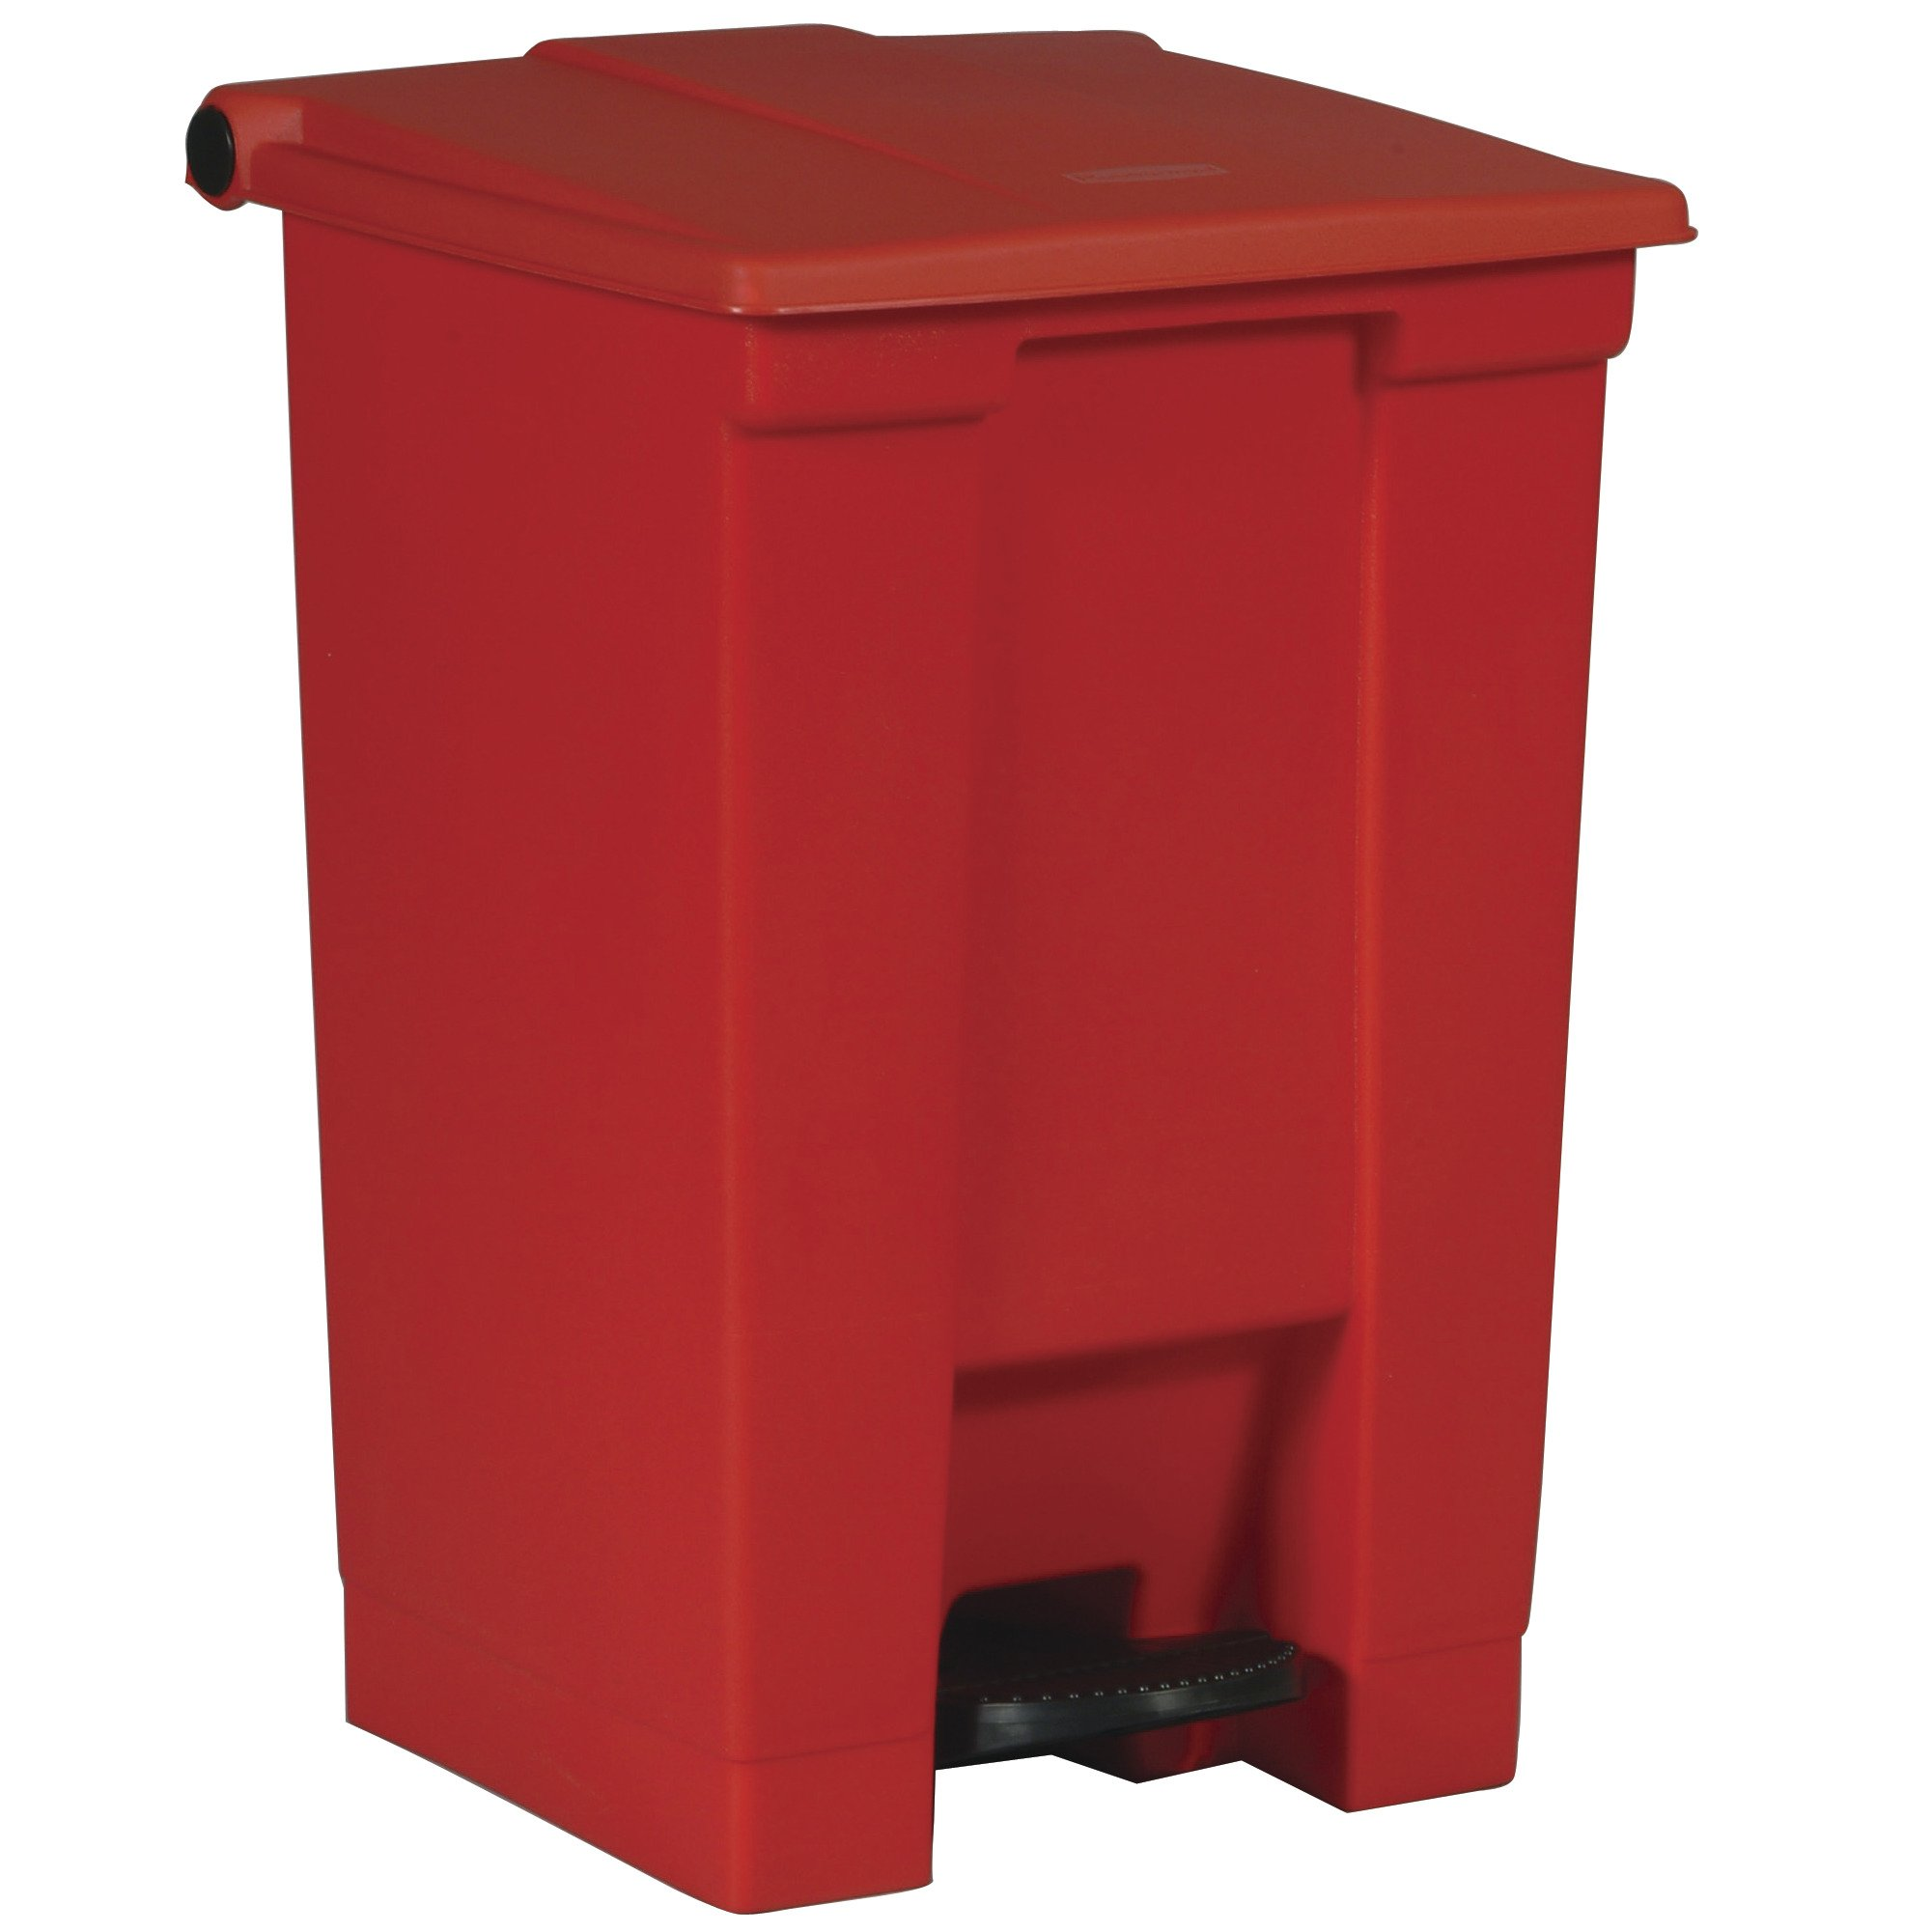 Rubbermaid Commercial Slim Jim Front Step On Trash Can, Red, 12 Gallon